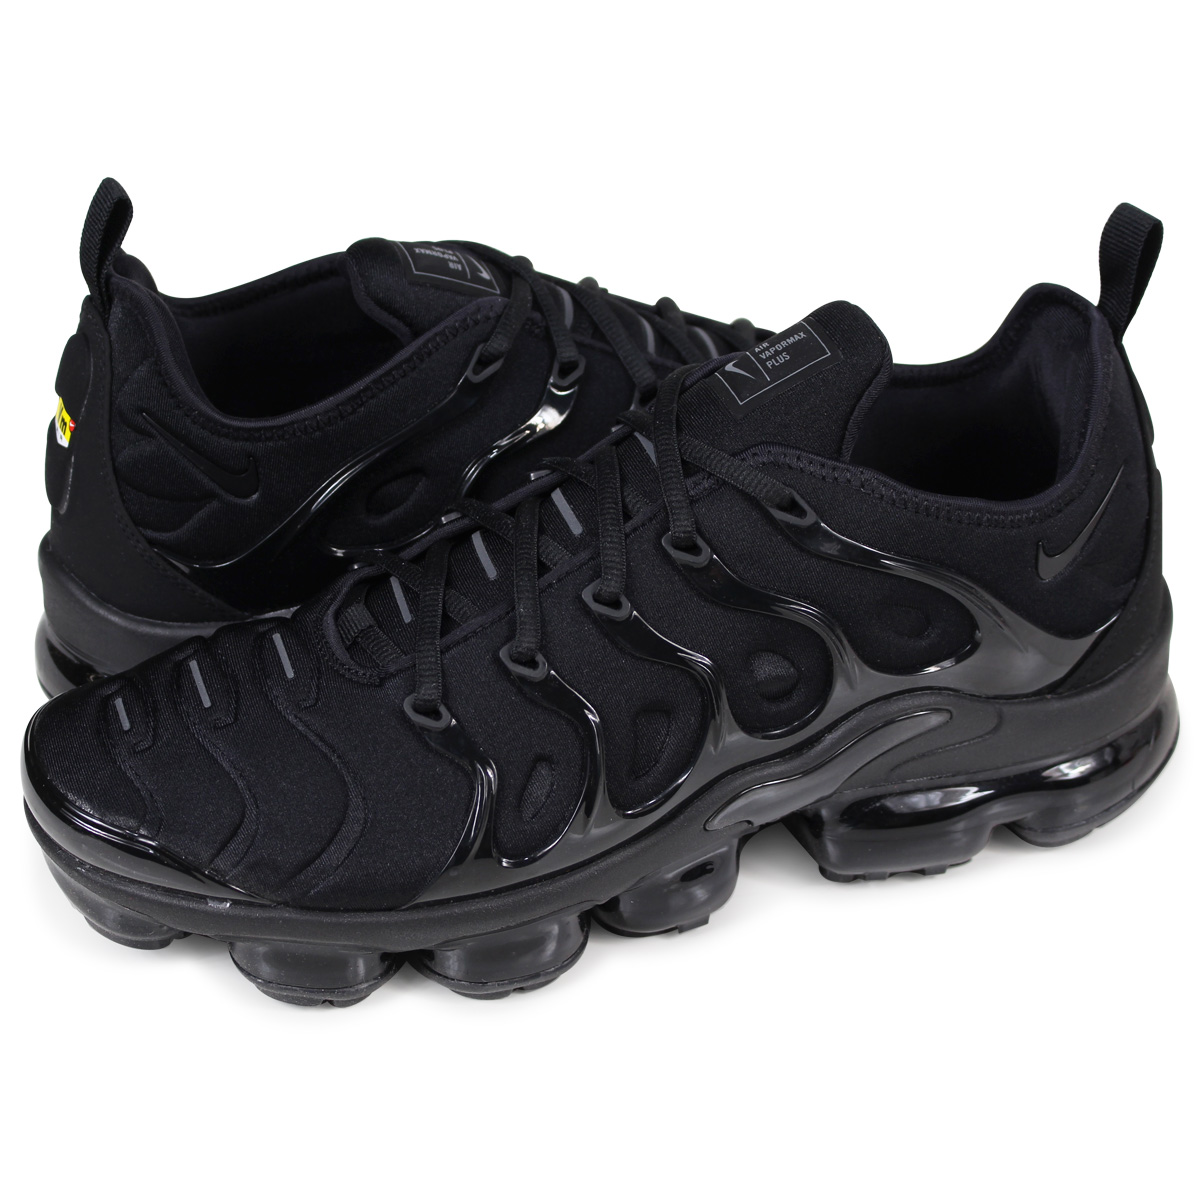 new concept 3c1c2 59047 Nike NIKE air vapor max plus sneakers men AIR VAPORMAX PLUS 924,453-004  black black